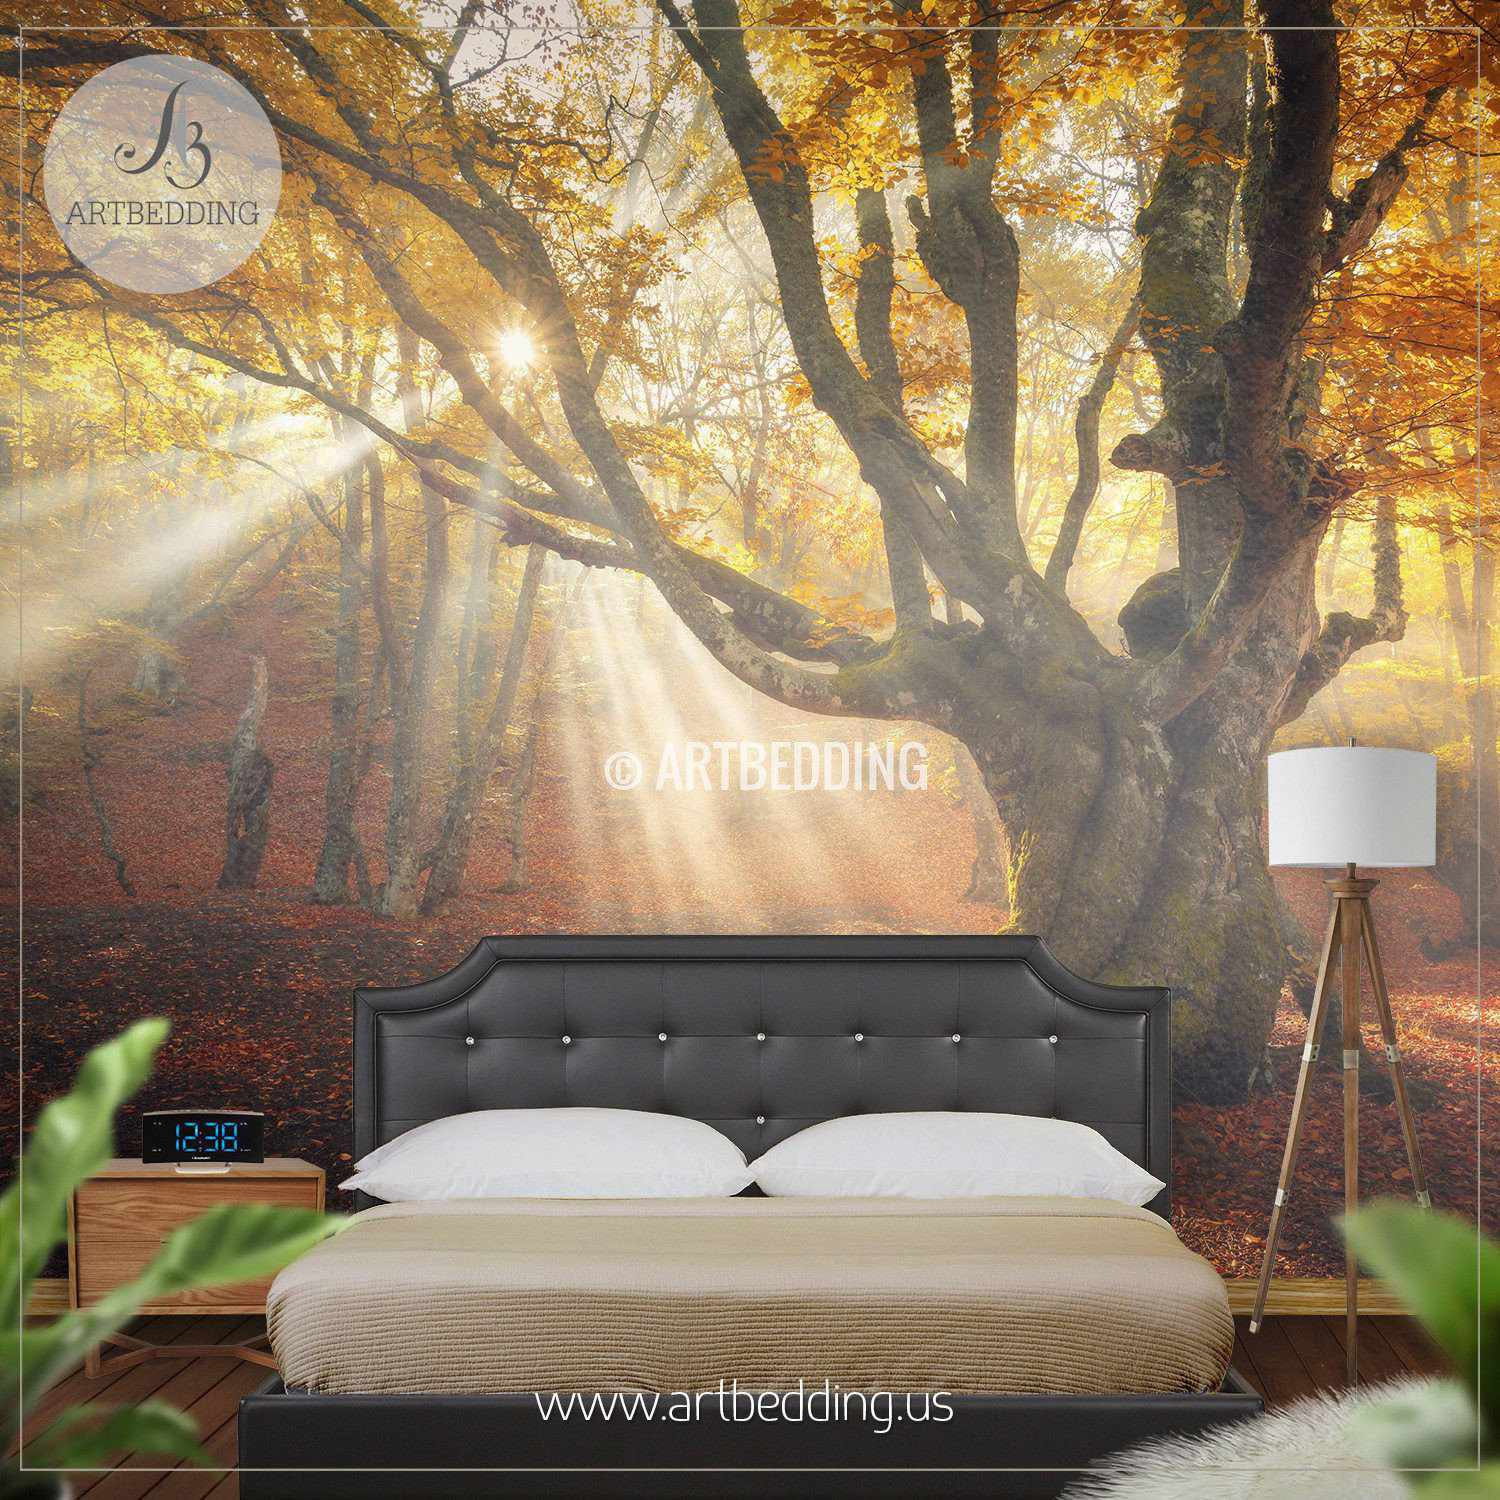 Autumn Forest Magical Old Tree photo wall mural ARTBEDDING